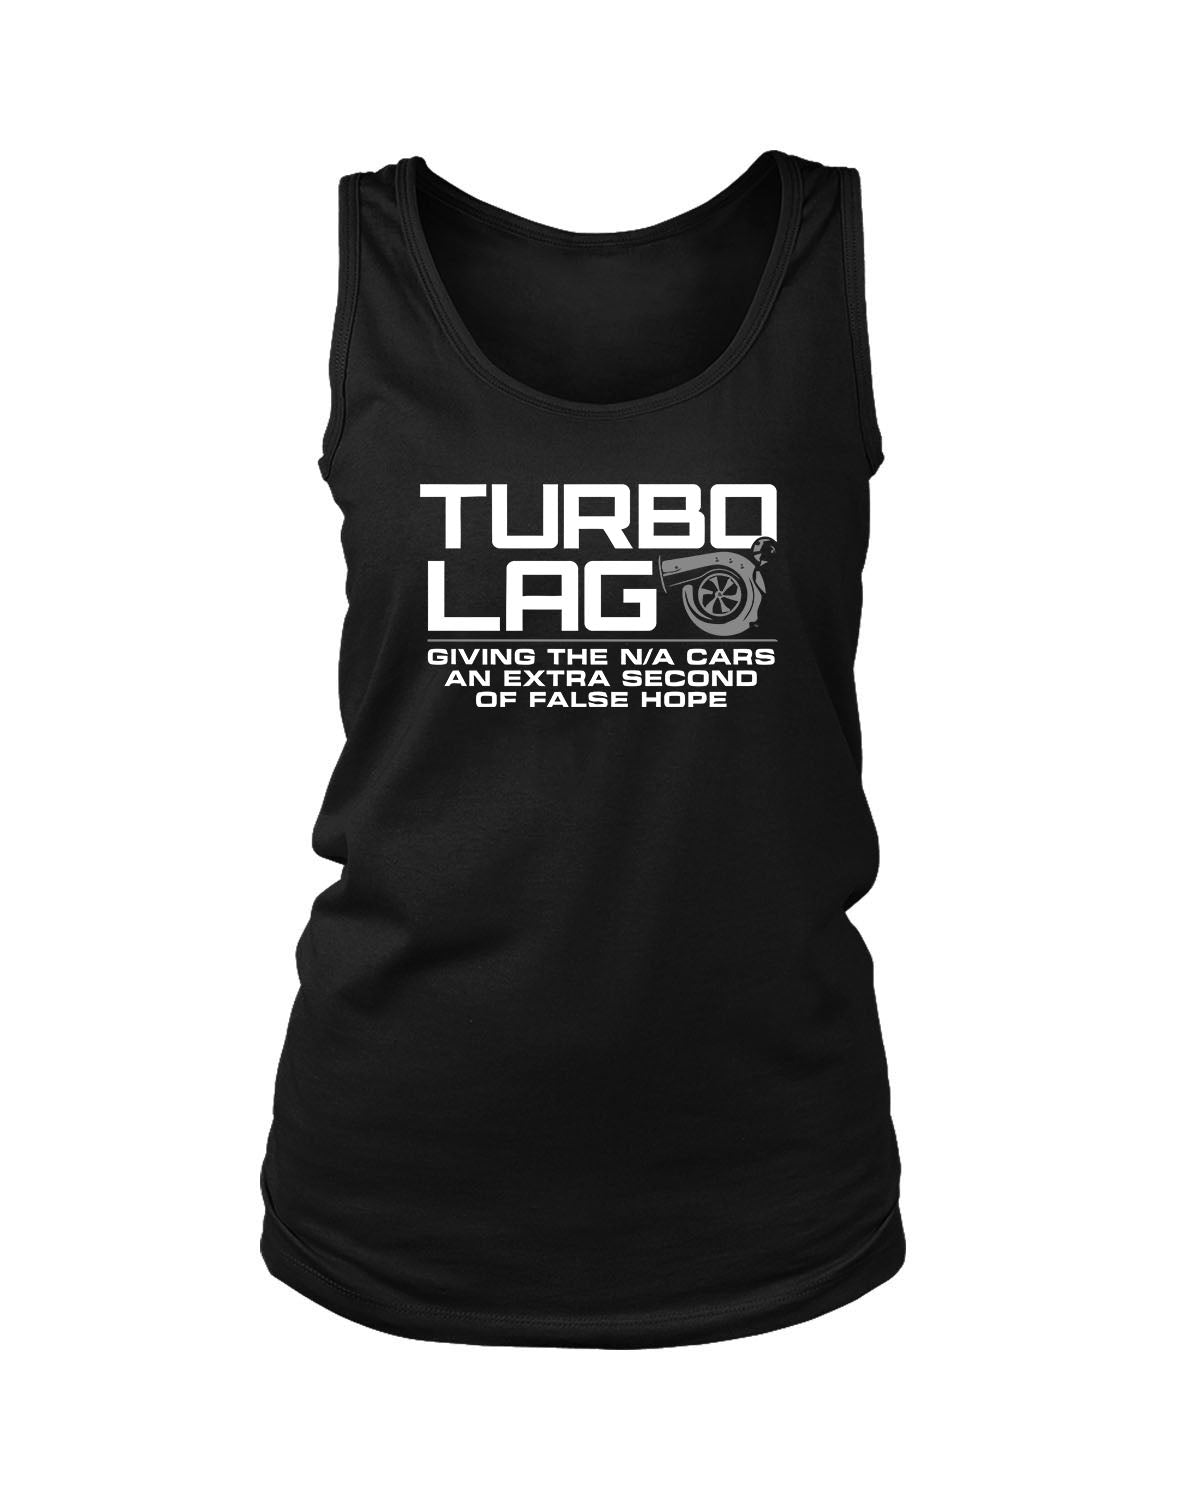 Turbo Lag Women's Tank Top